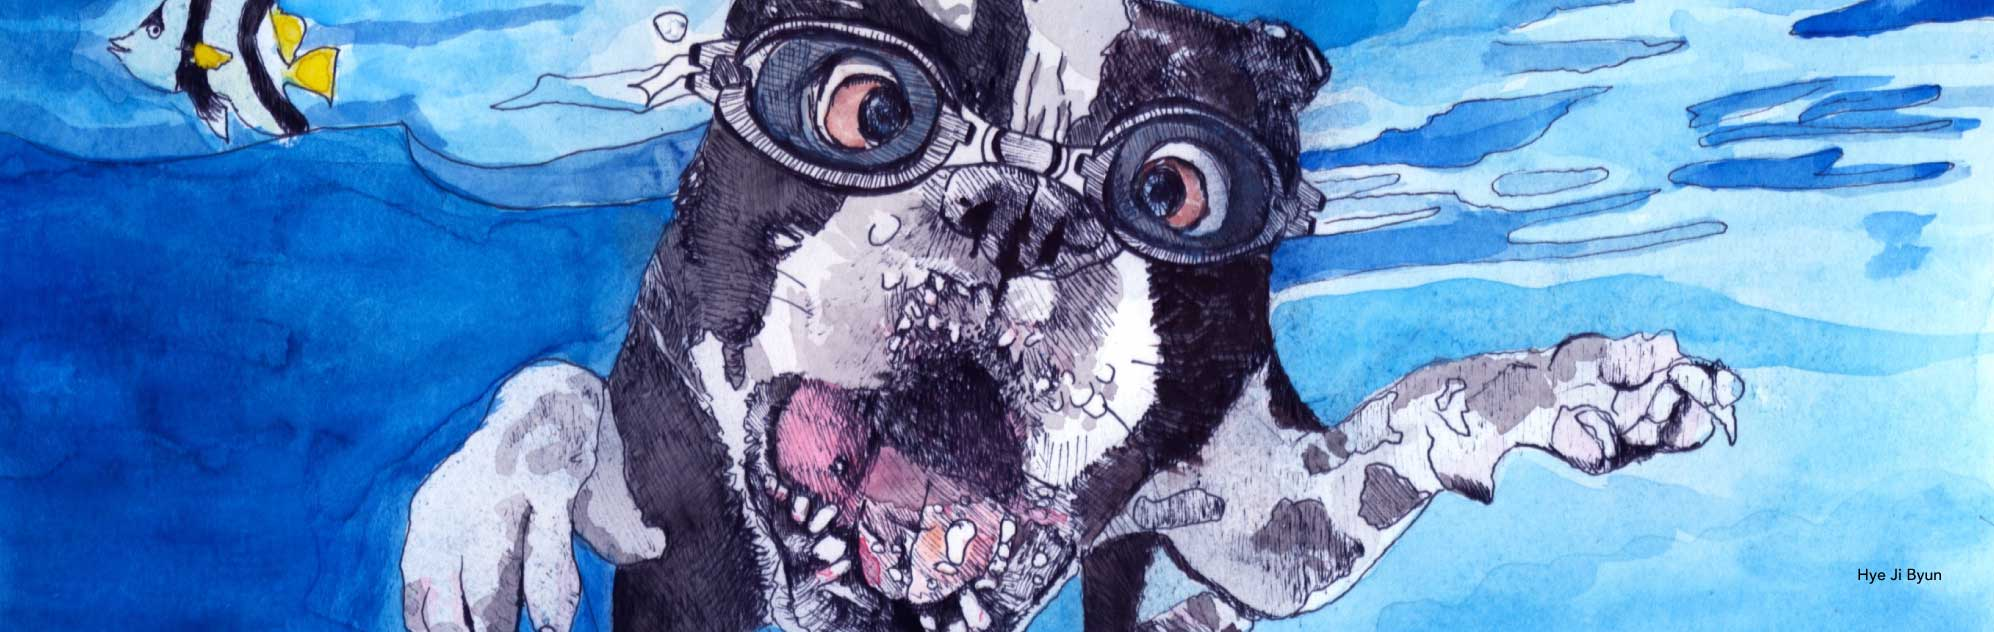 Watercolor illustration of pug with goggles in water.